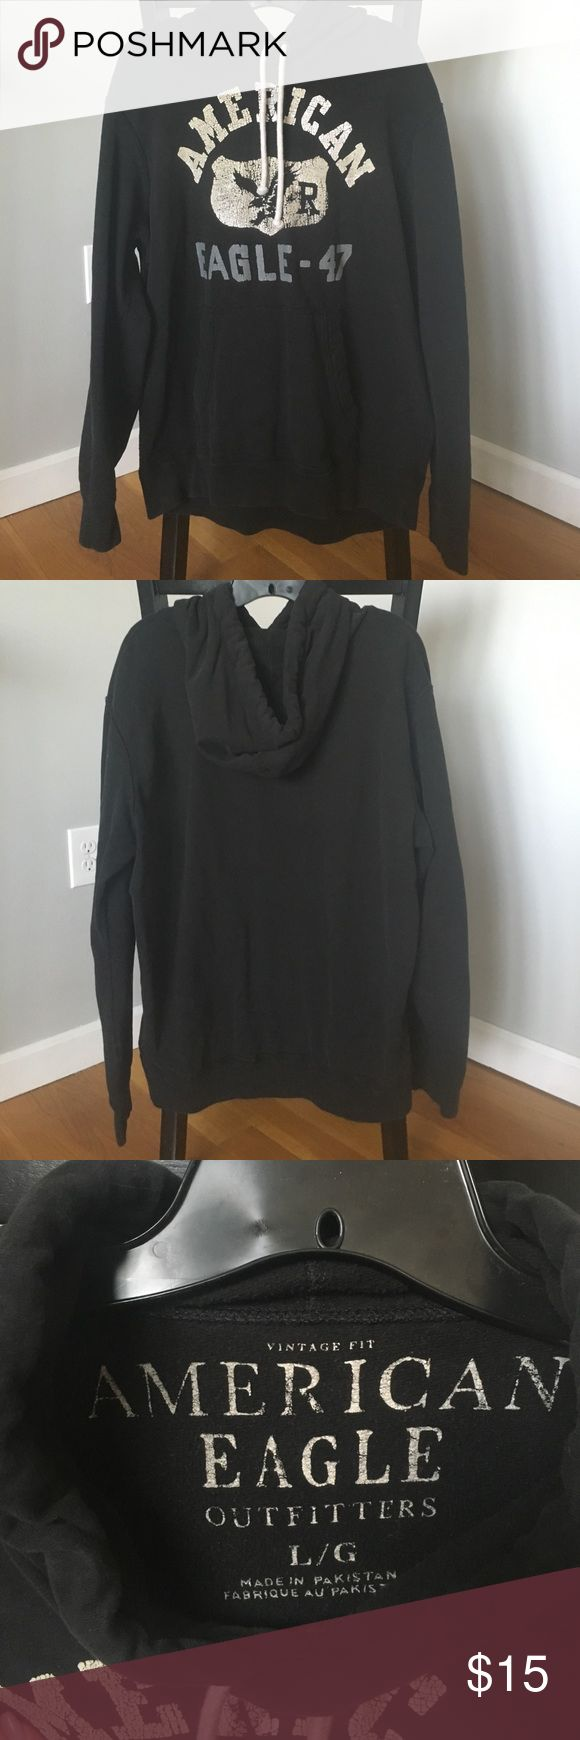 Mens black American Eagle sweatshirt size L Mens American Eagle brand hoodie with white graphics on front size large great condition! American Eagle Outfitters Tops Sweatshirts & Hoodies